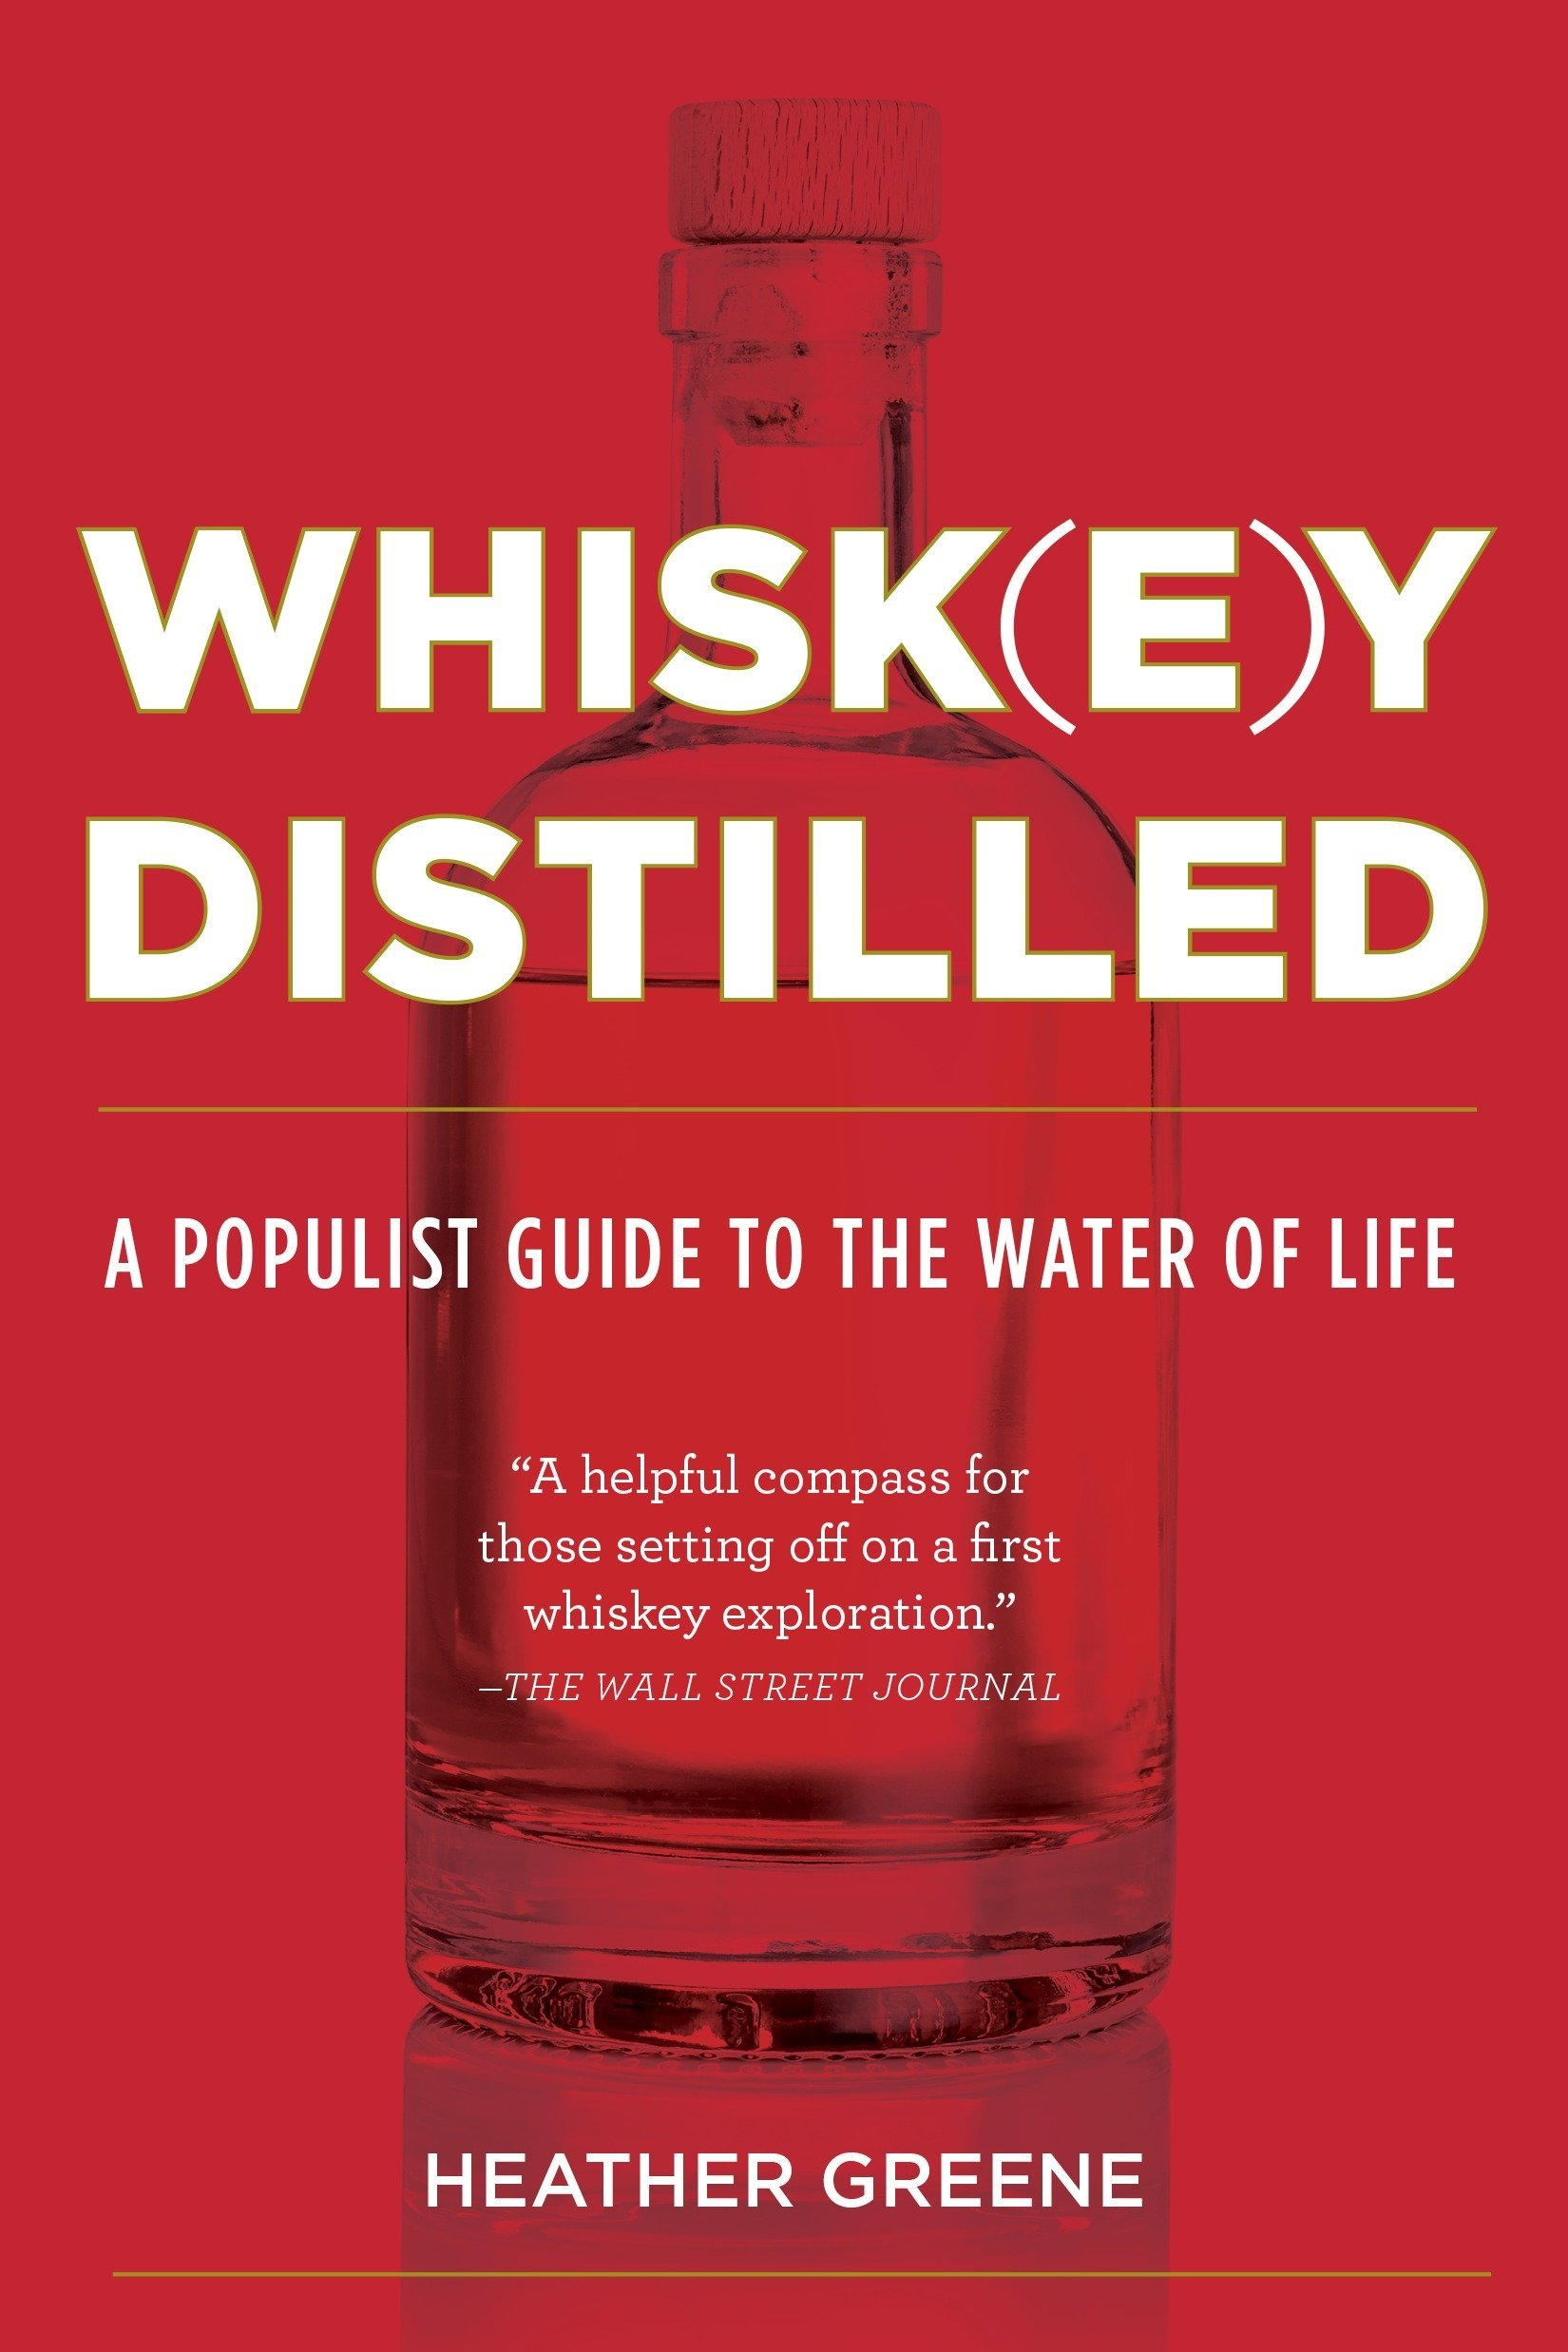 b3799be37 Whiskey Distilled: A Populist Guide to the Water of Life: Heather ...